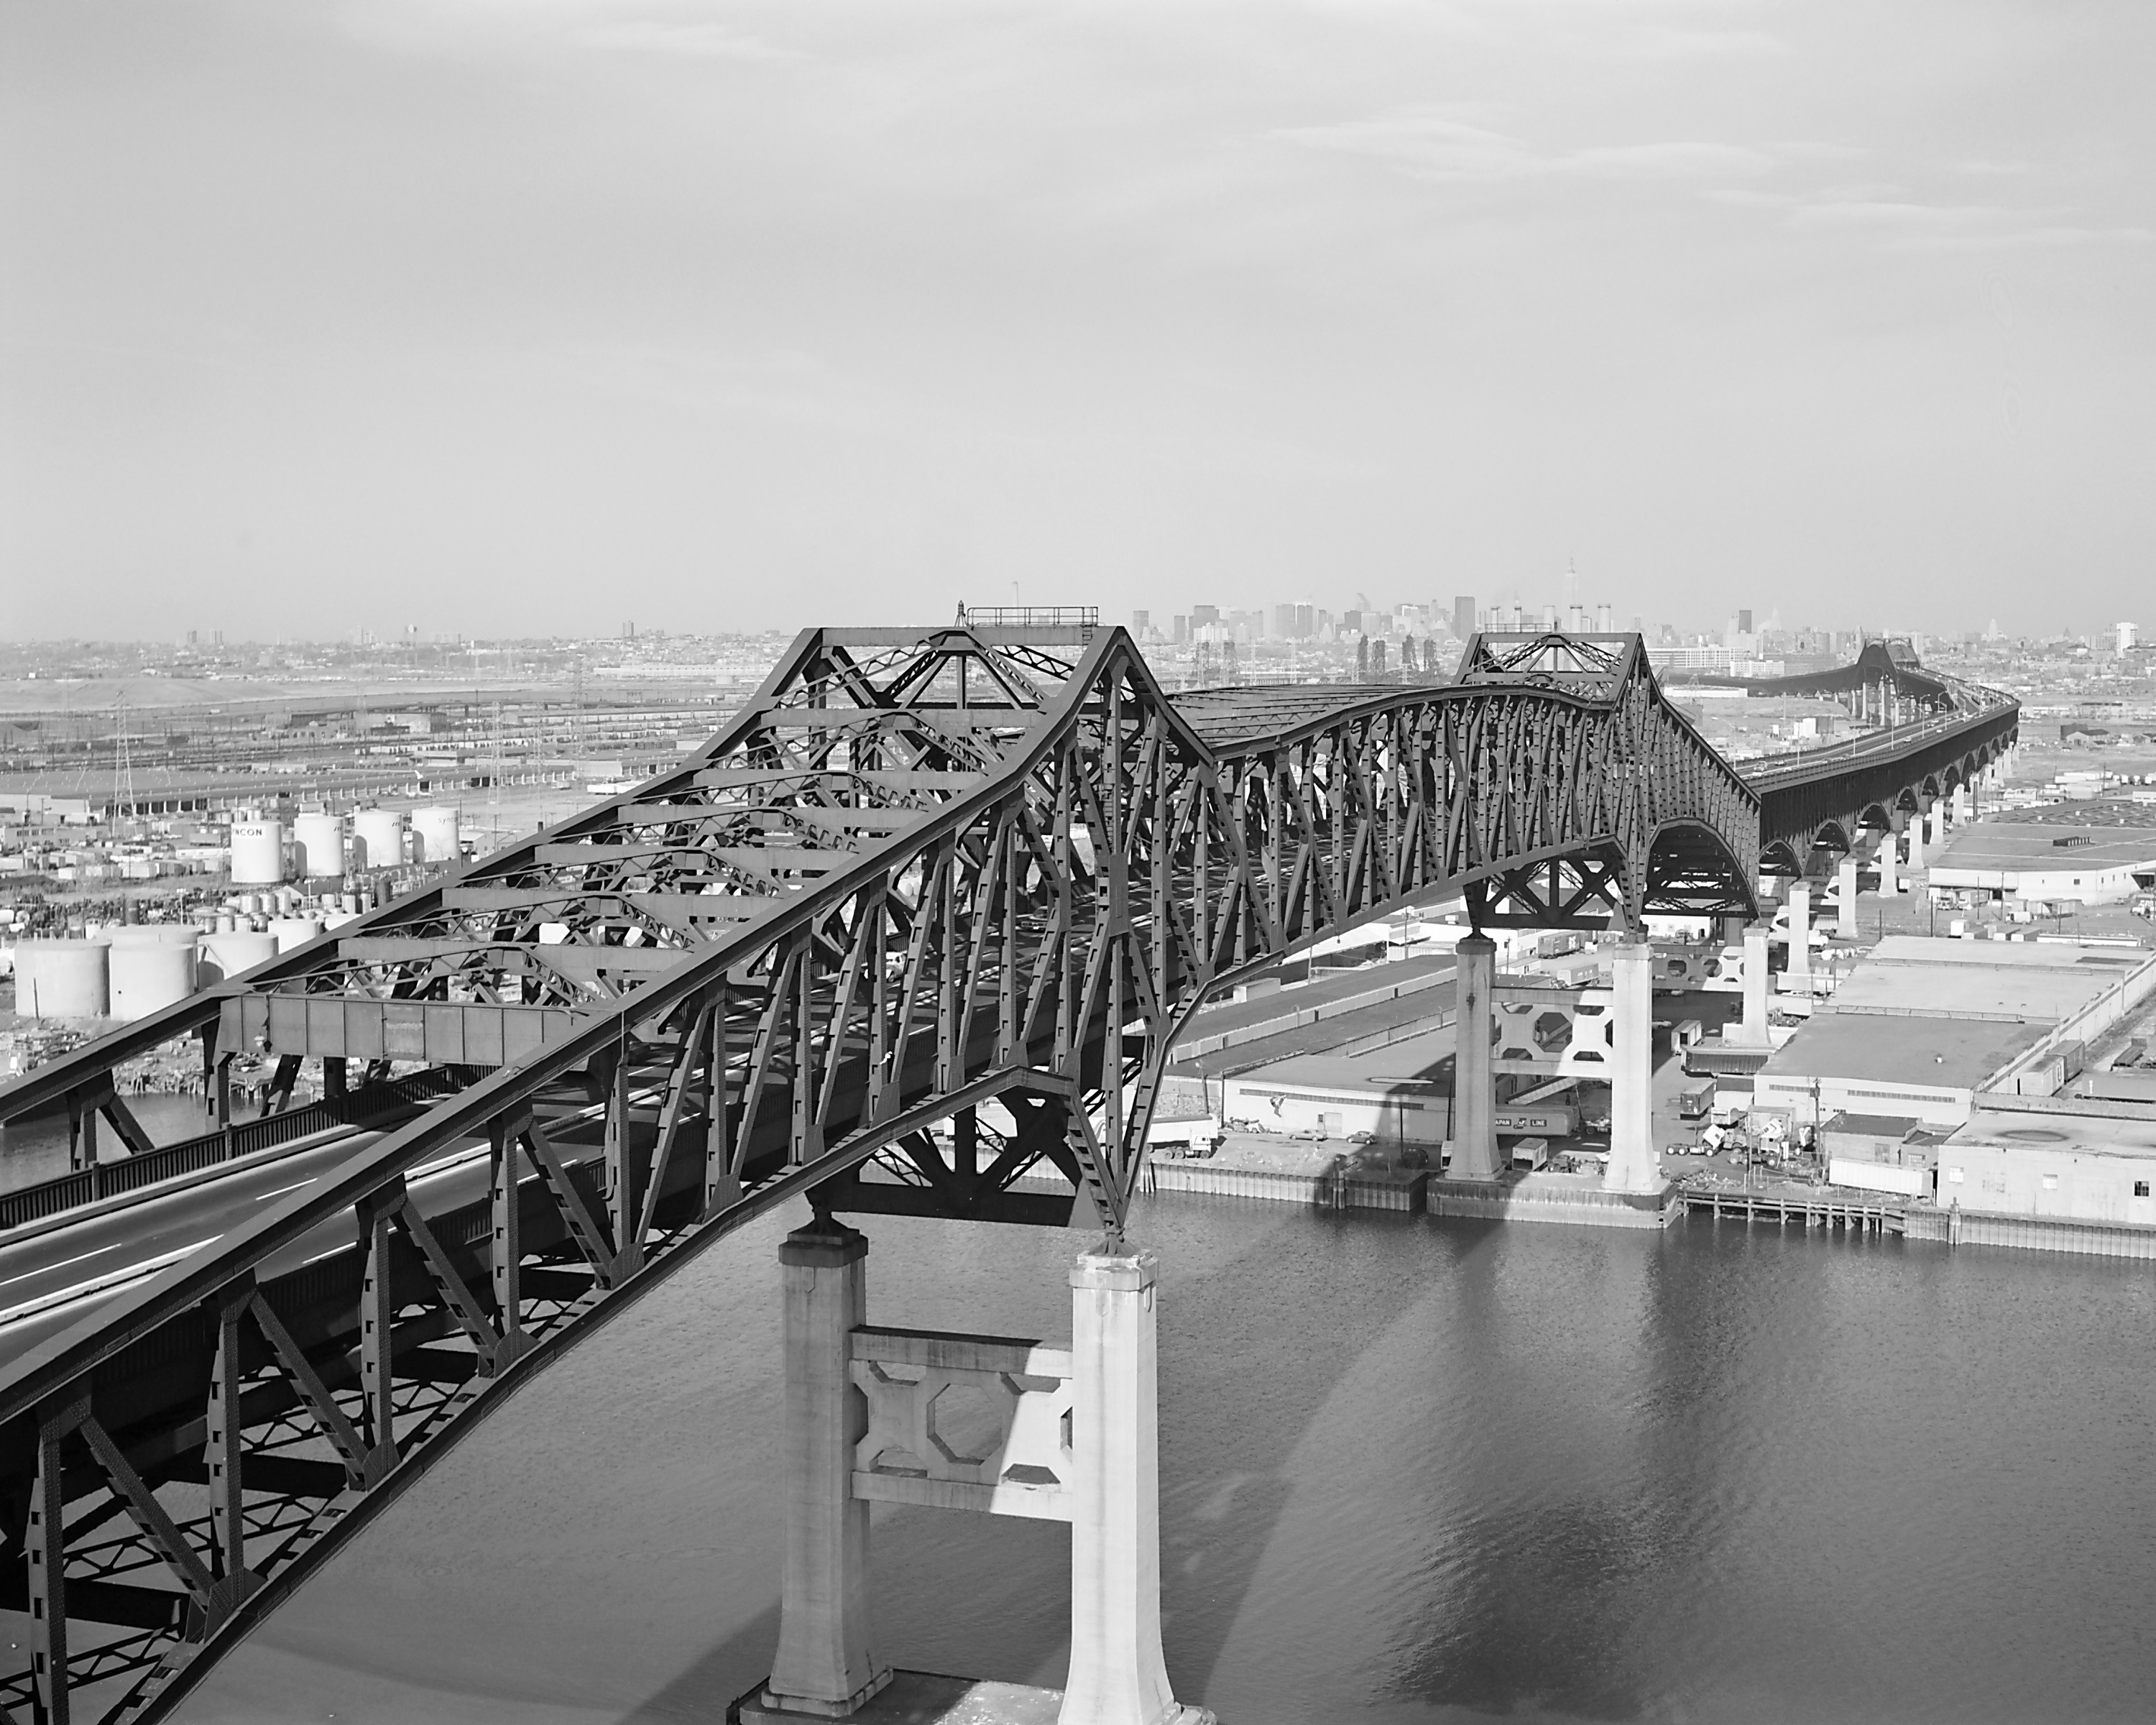 Pulaski_Skyway_full_view.jpg